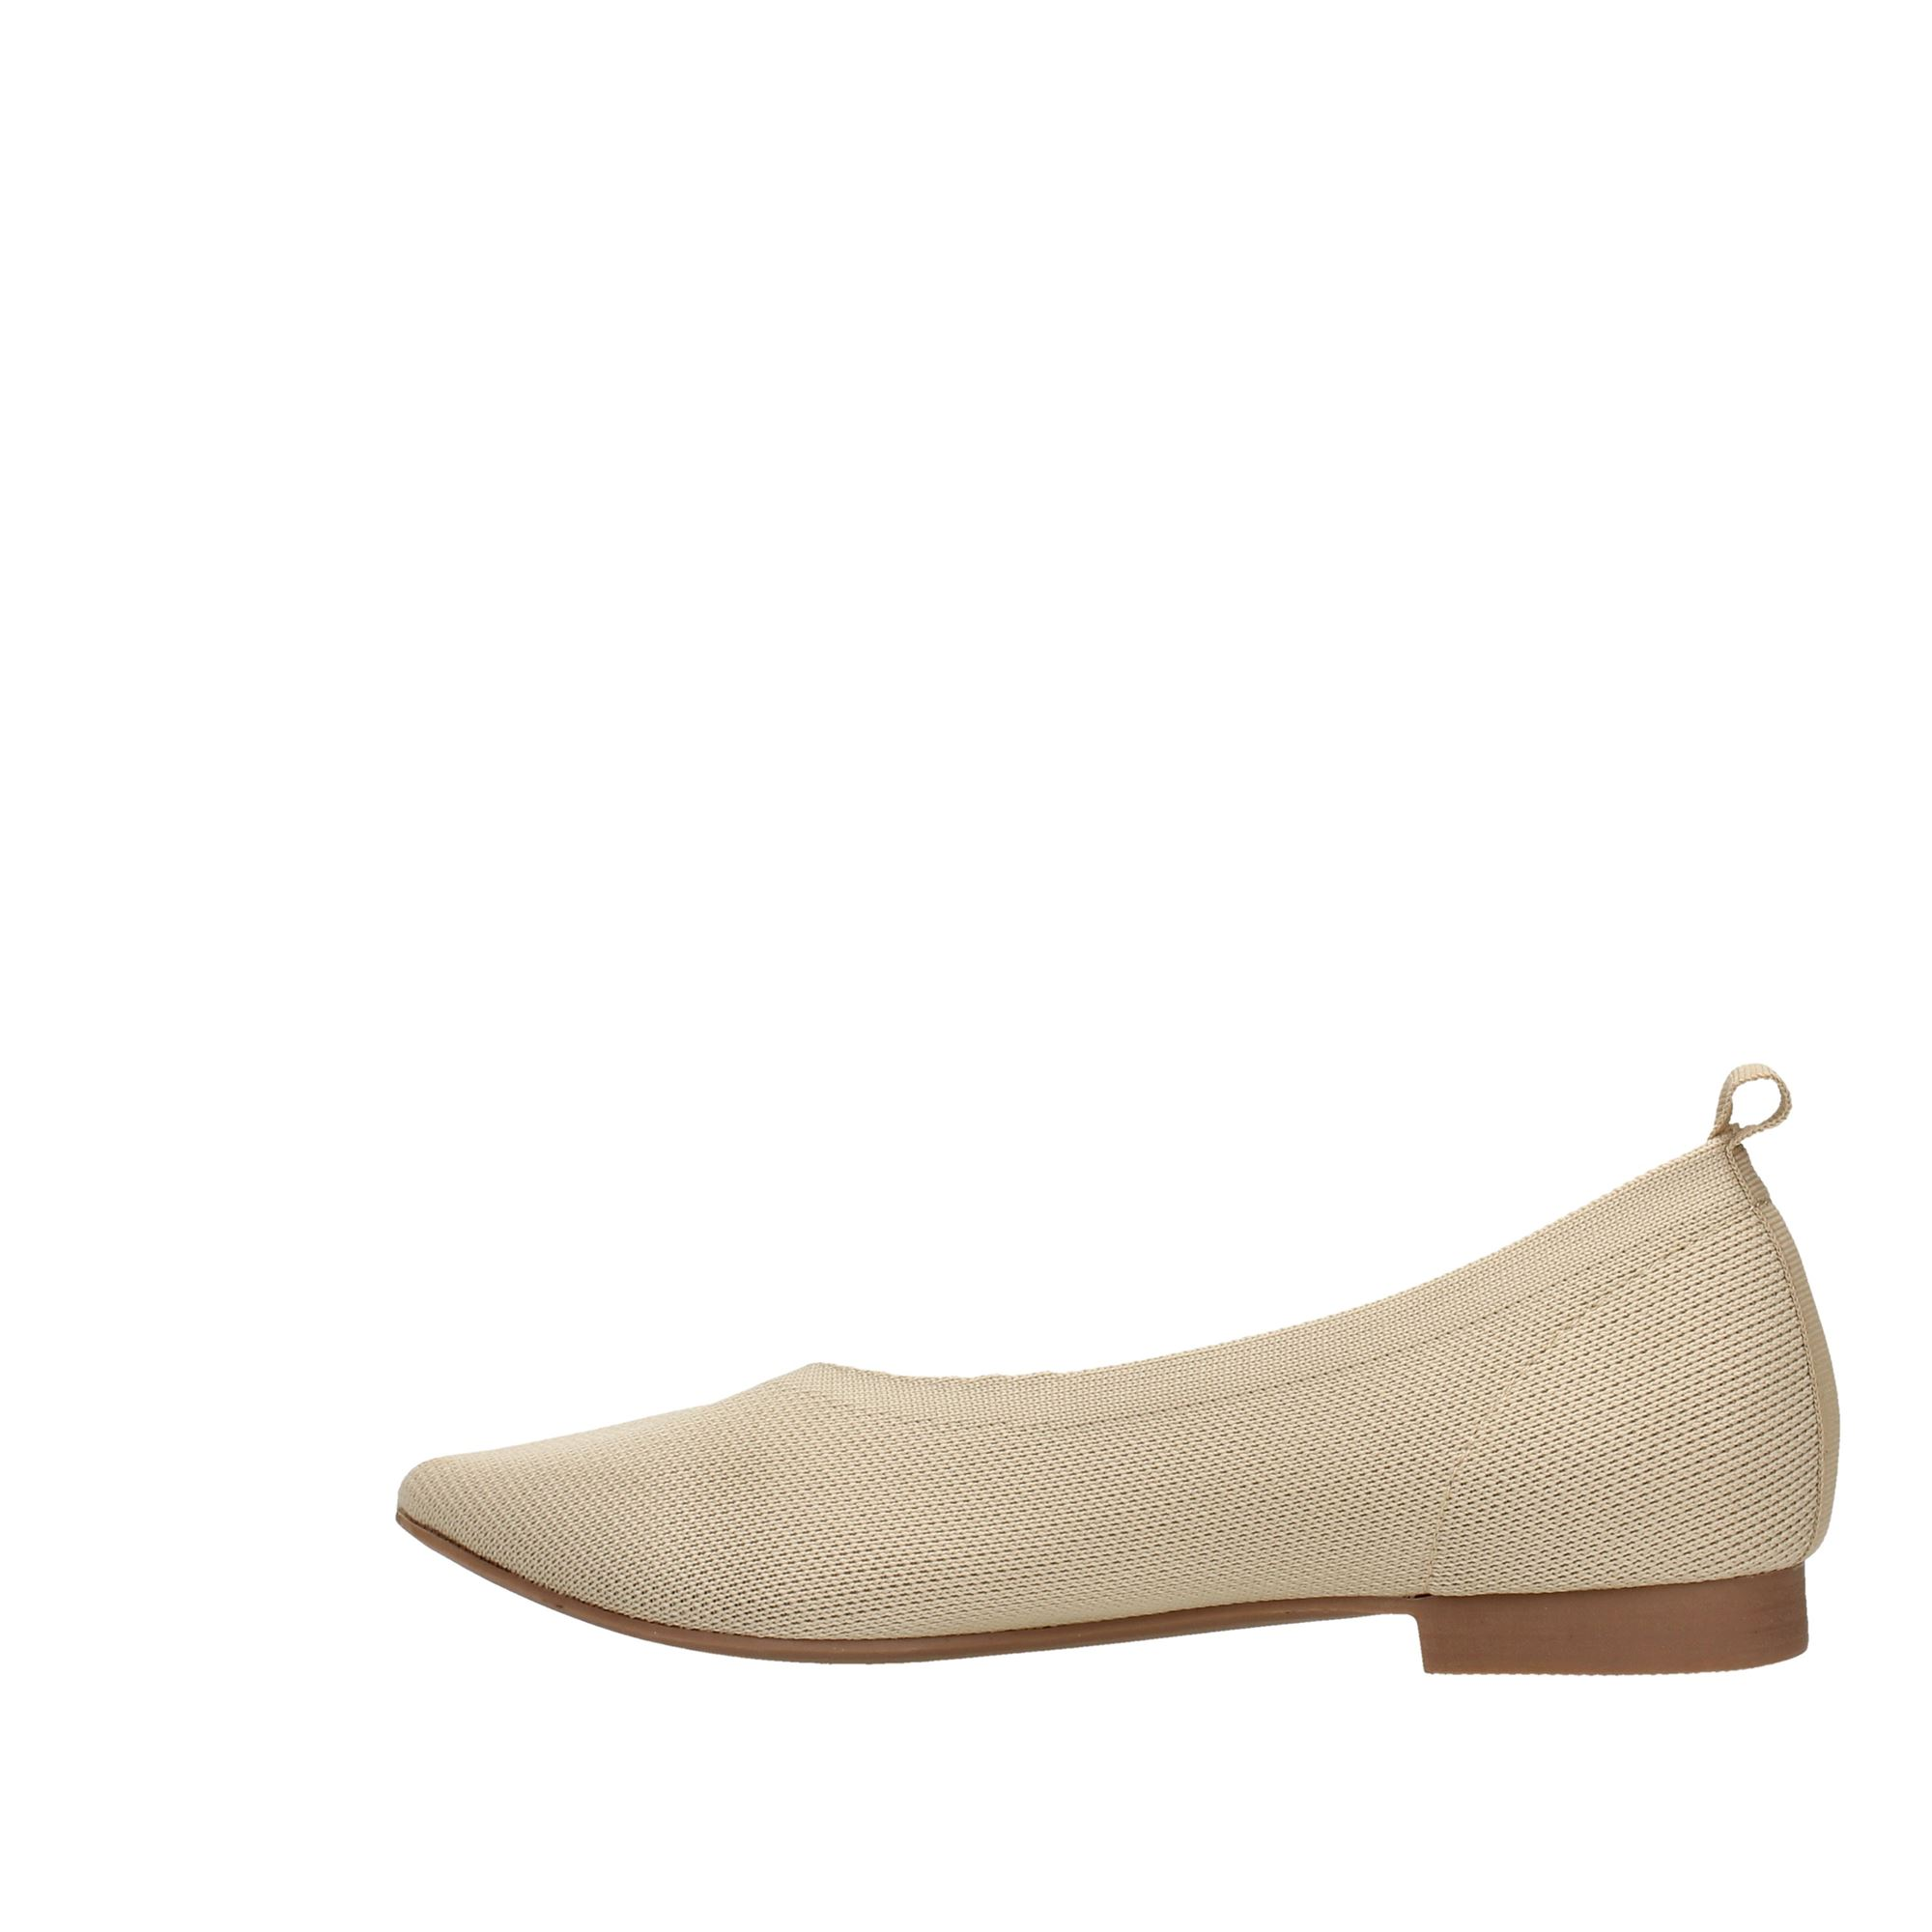 Tata Italia Shoes Woman Ballerine Nude DW503-28